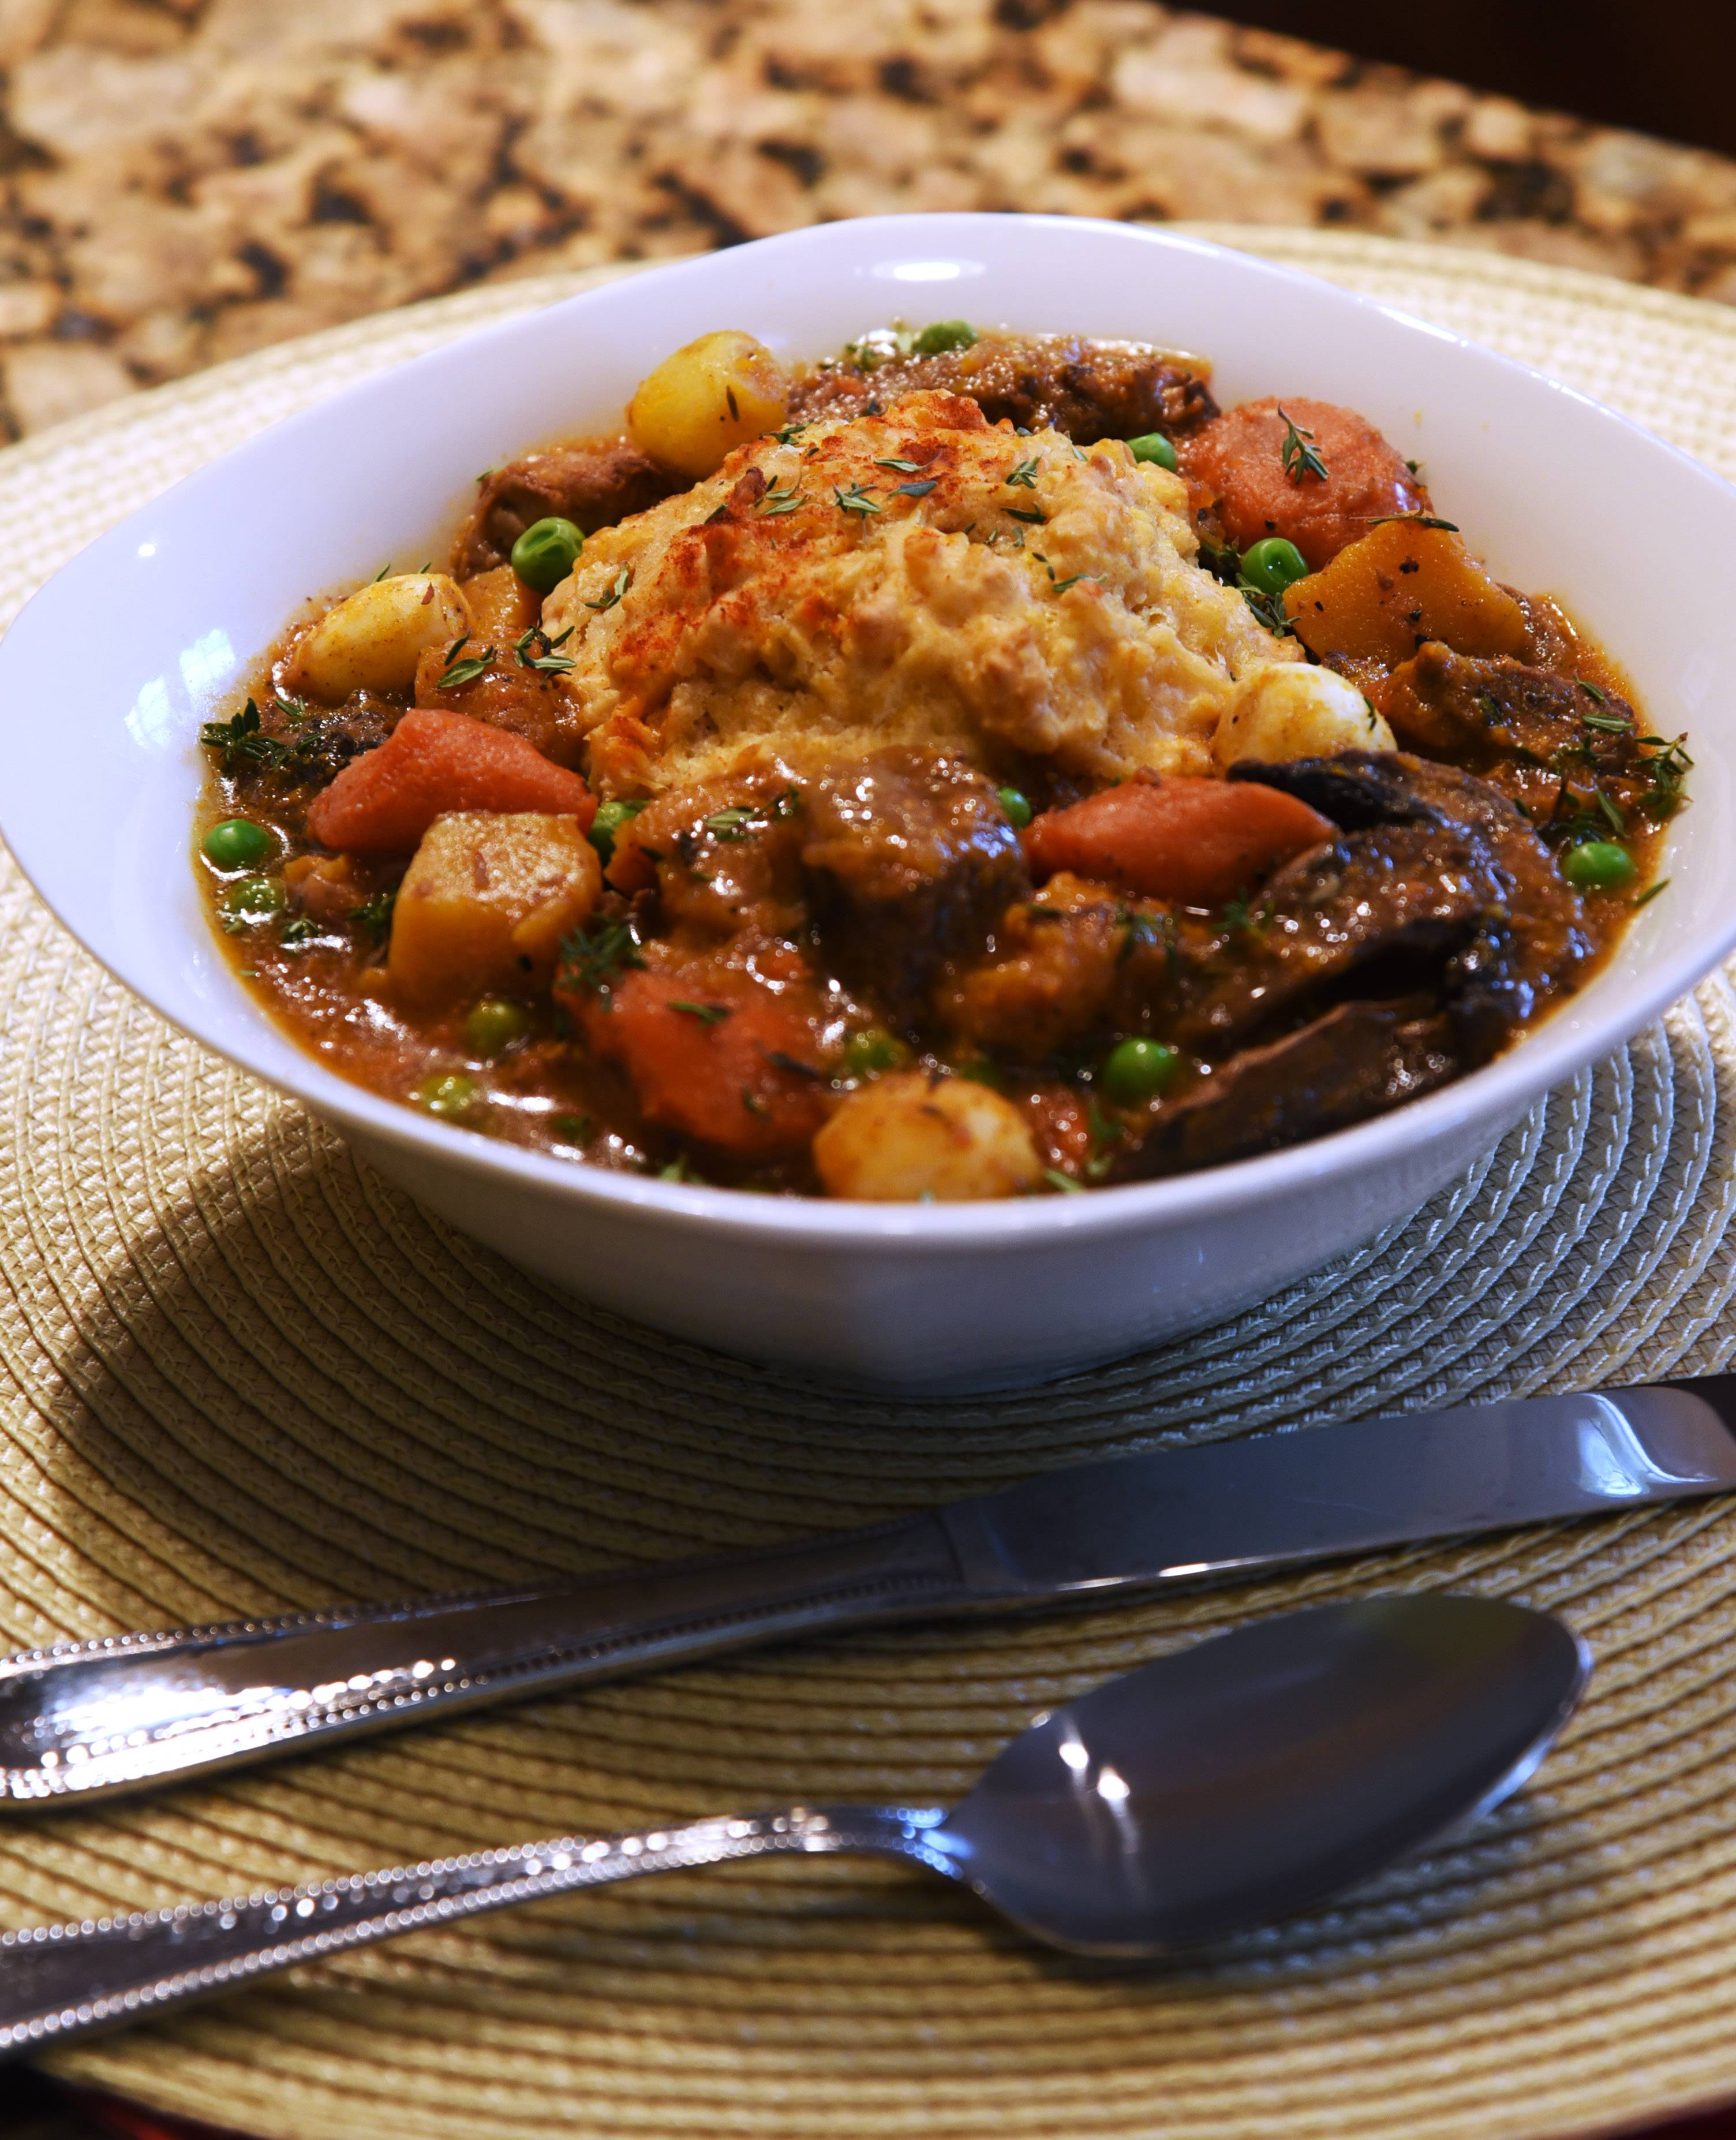 Bourbon, Beef & Dumplings made by Mundelein Cook of the Week Challenge contestant Teresa Fiocchi.